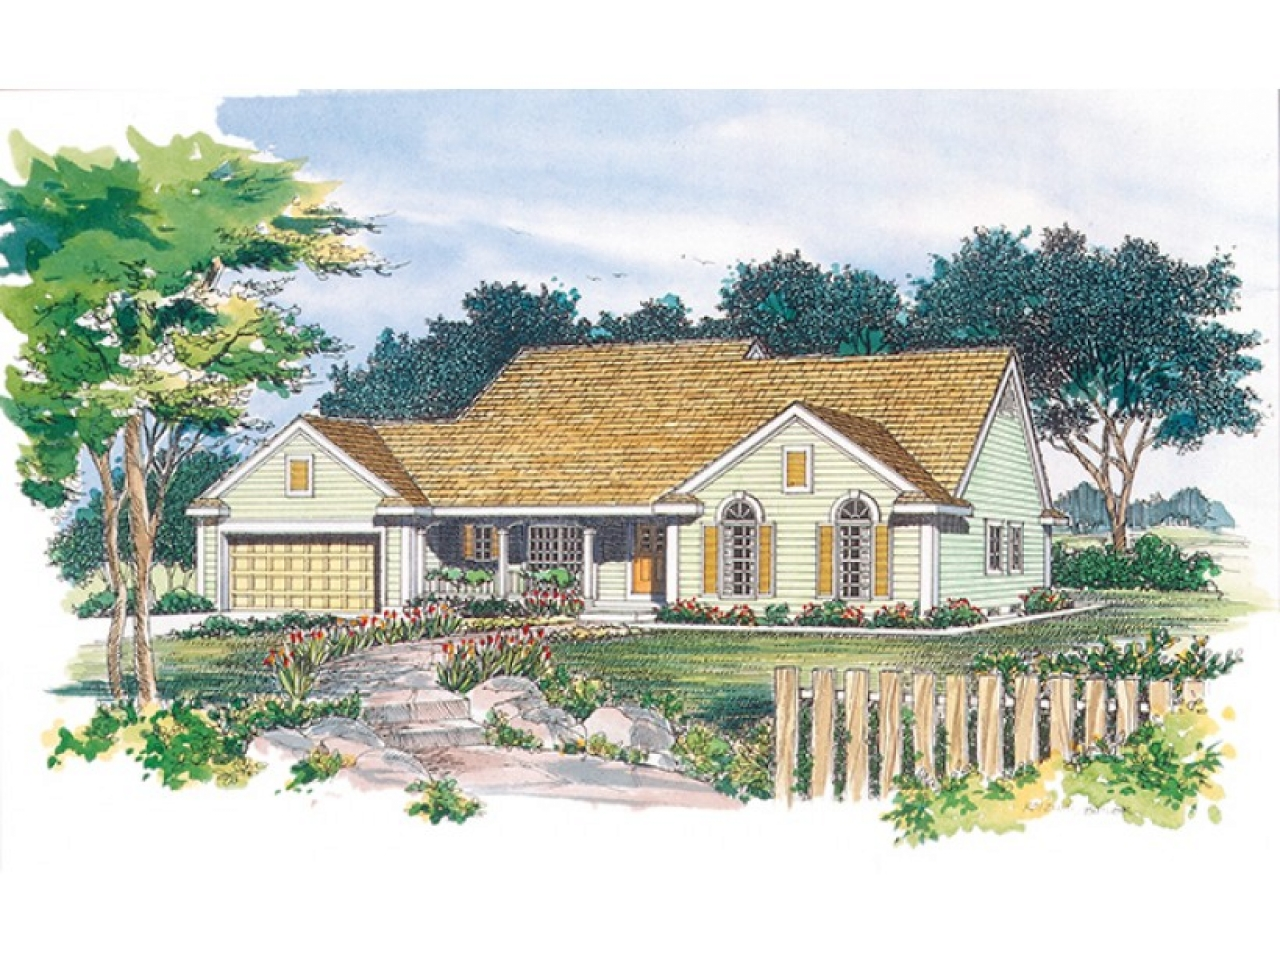 Eplans cottage house plan country charmer 1835 square feet for Eplans house plans